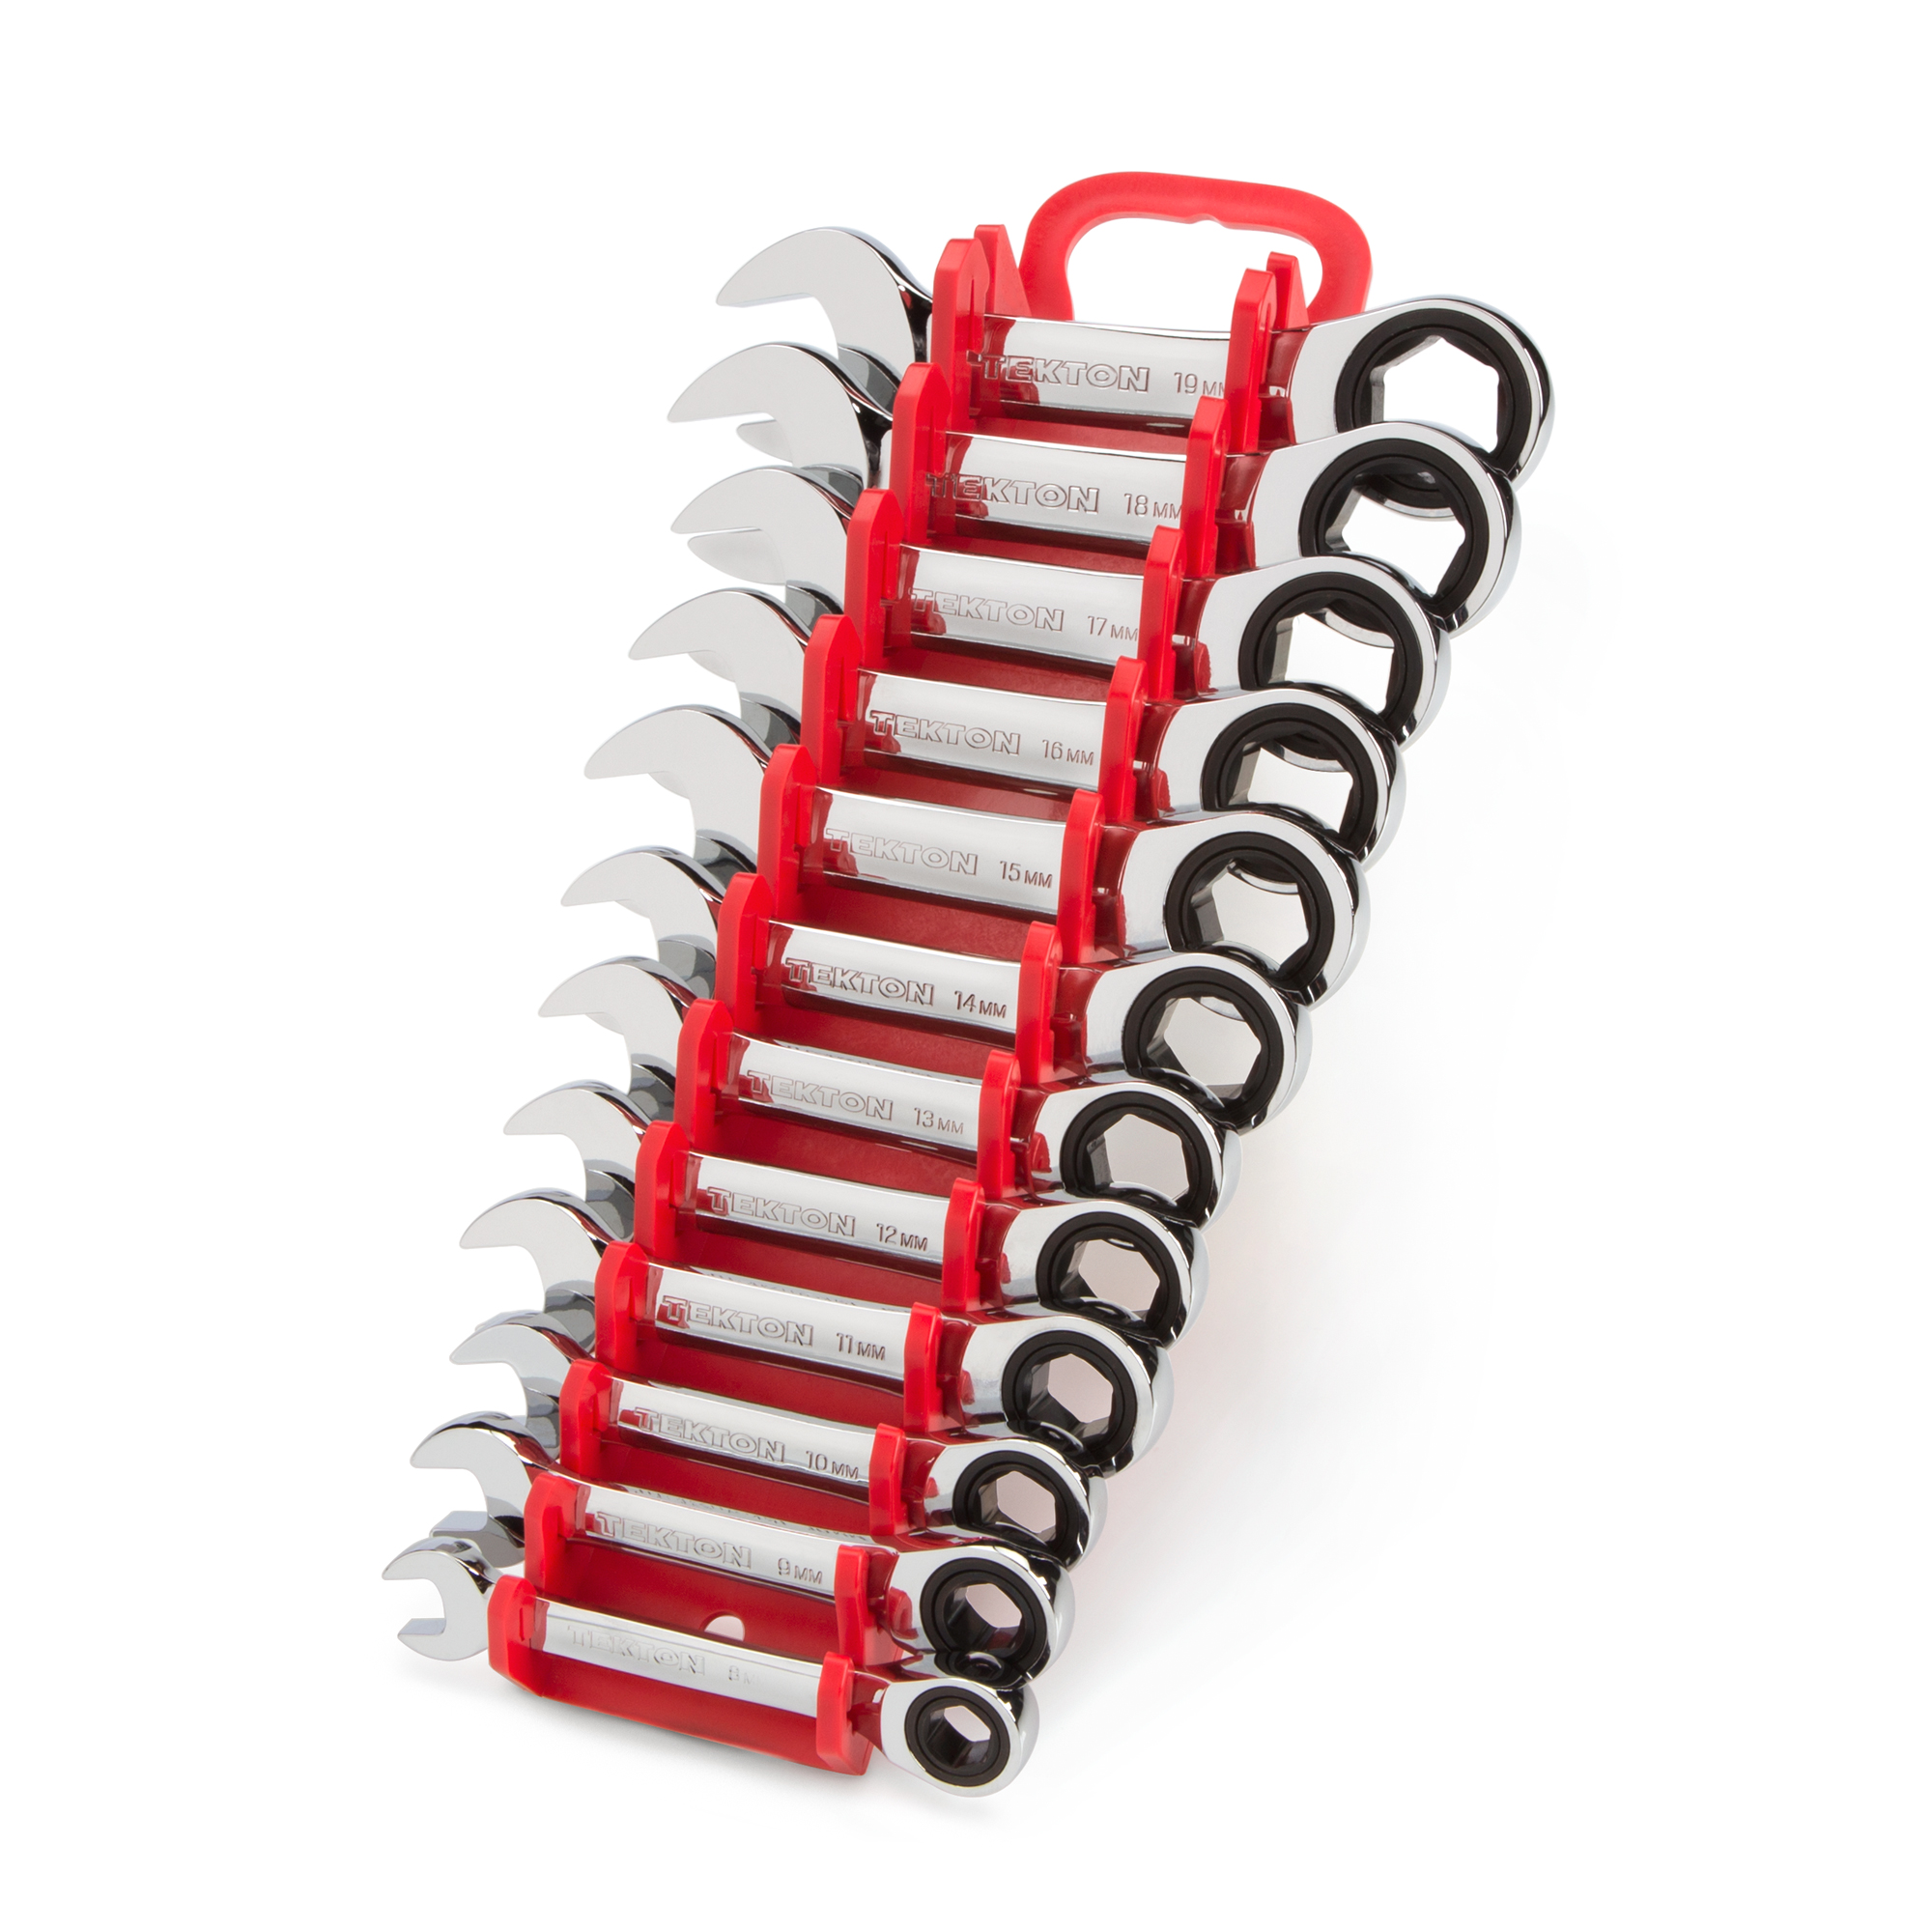 TEKTON Stubby Ratcheting Combination Wrench Set with Store and Go Keeper, Metric, 8 mm - 19 mm, 12-Piece | WRN50170